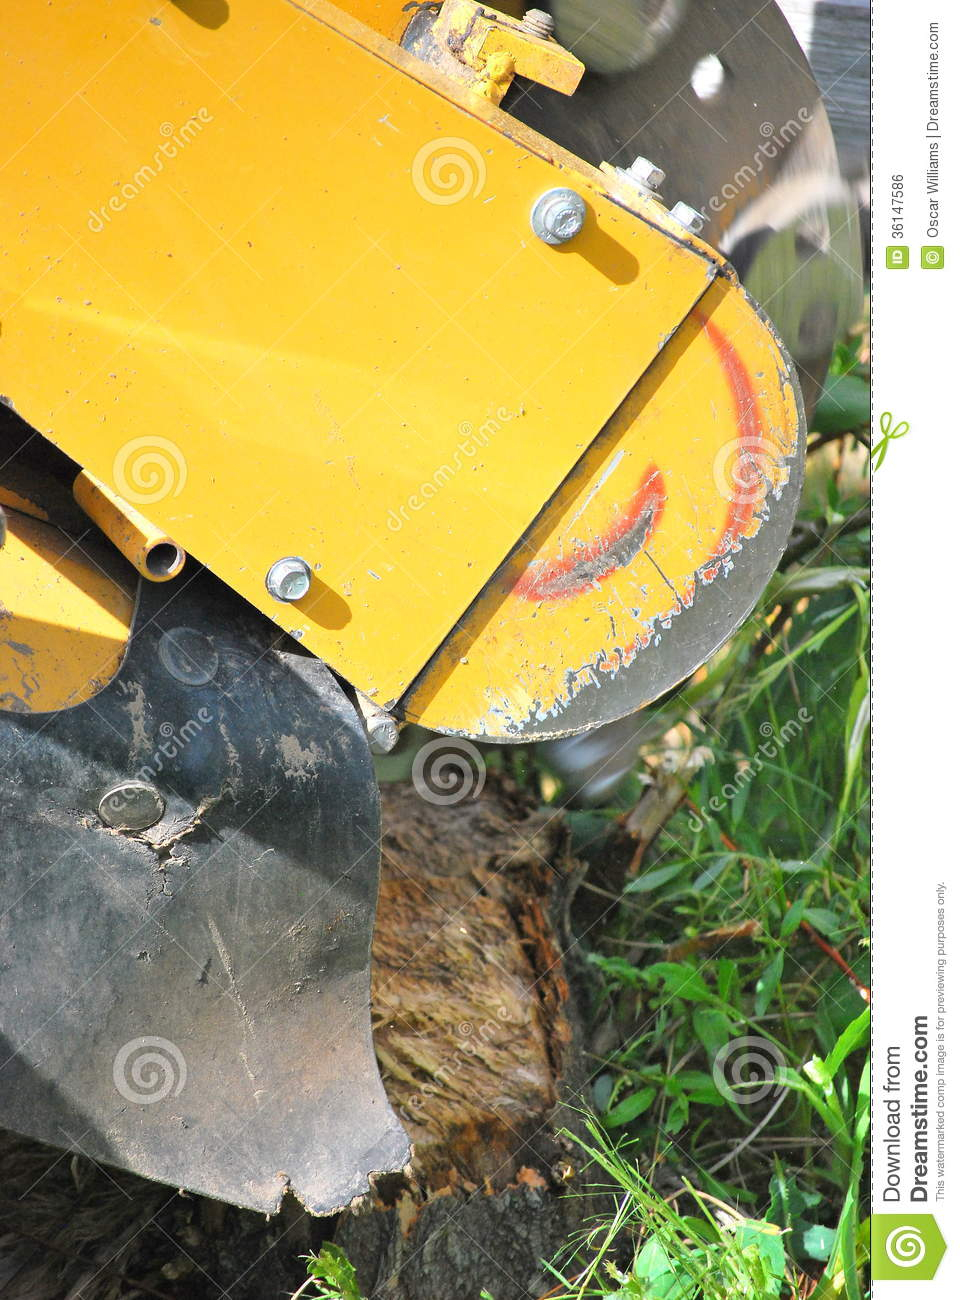 stump remover machine